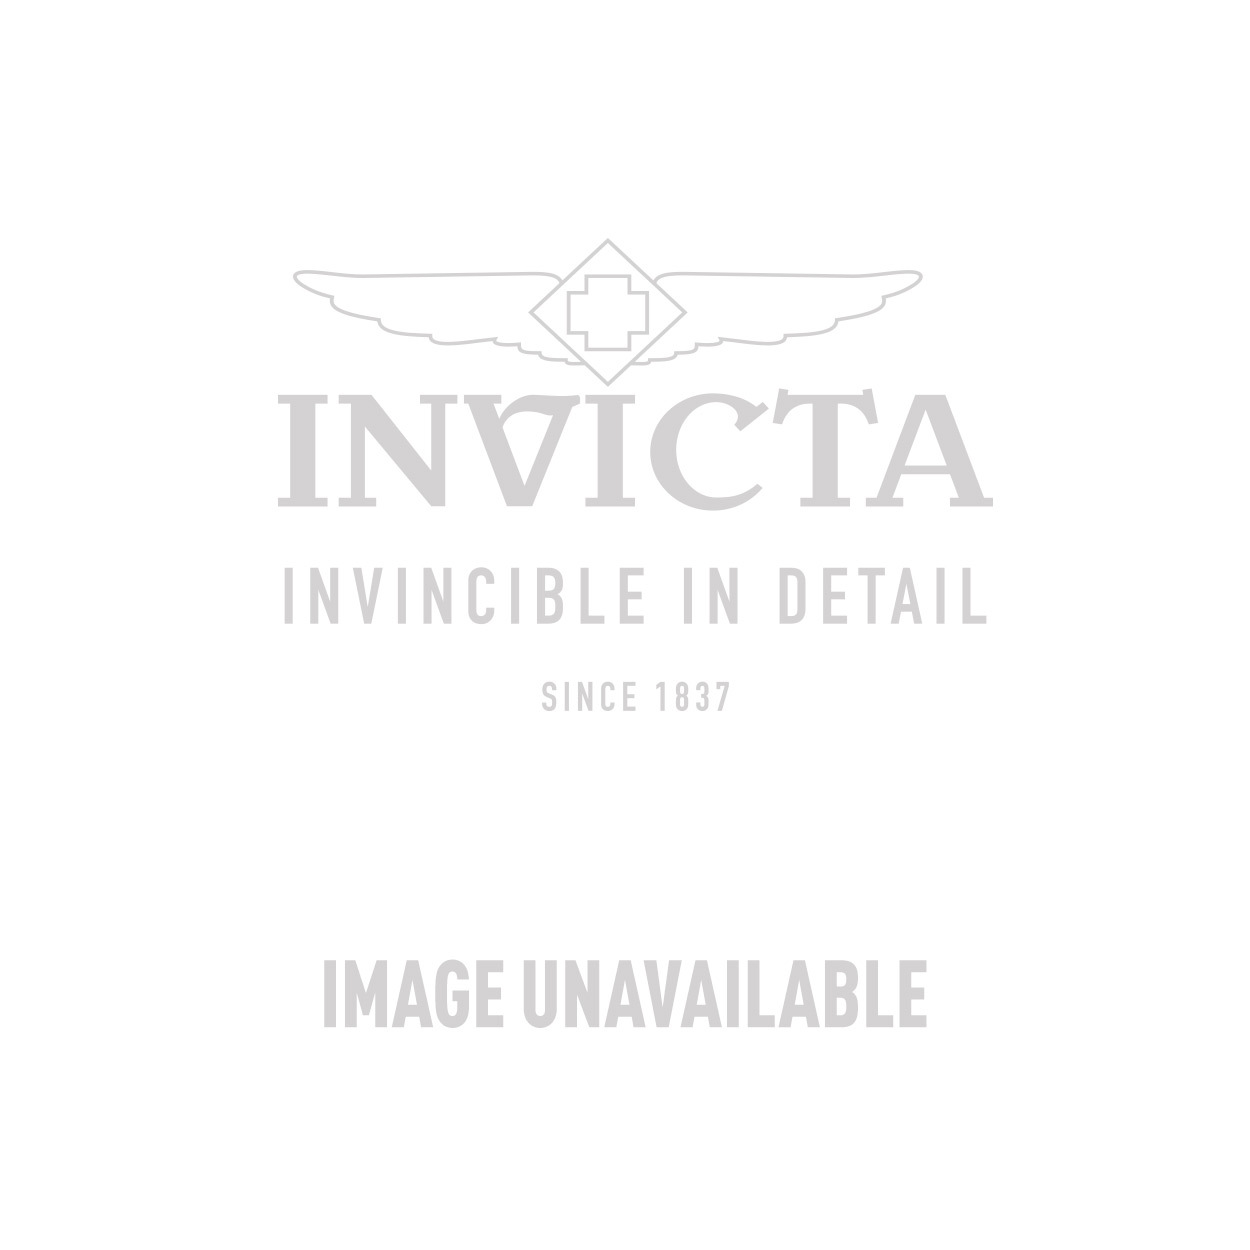 Invicta Russian Diver  Mechanical Watch - Gold, Blue case with Black, Grey tone Leather band - Model 16199